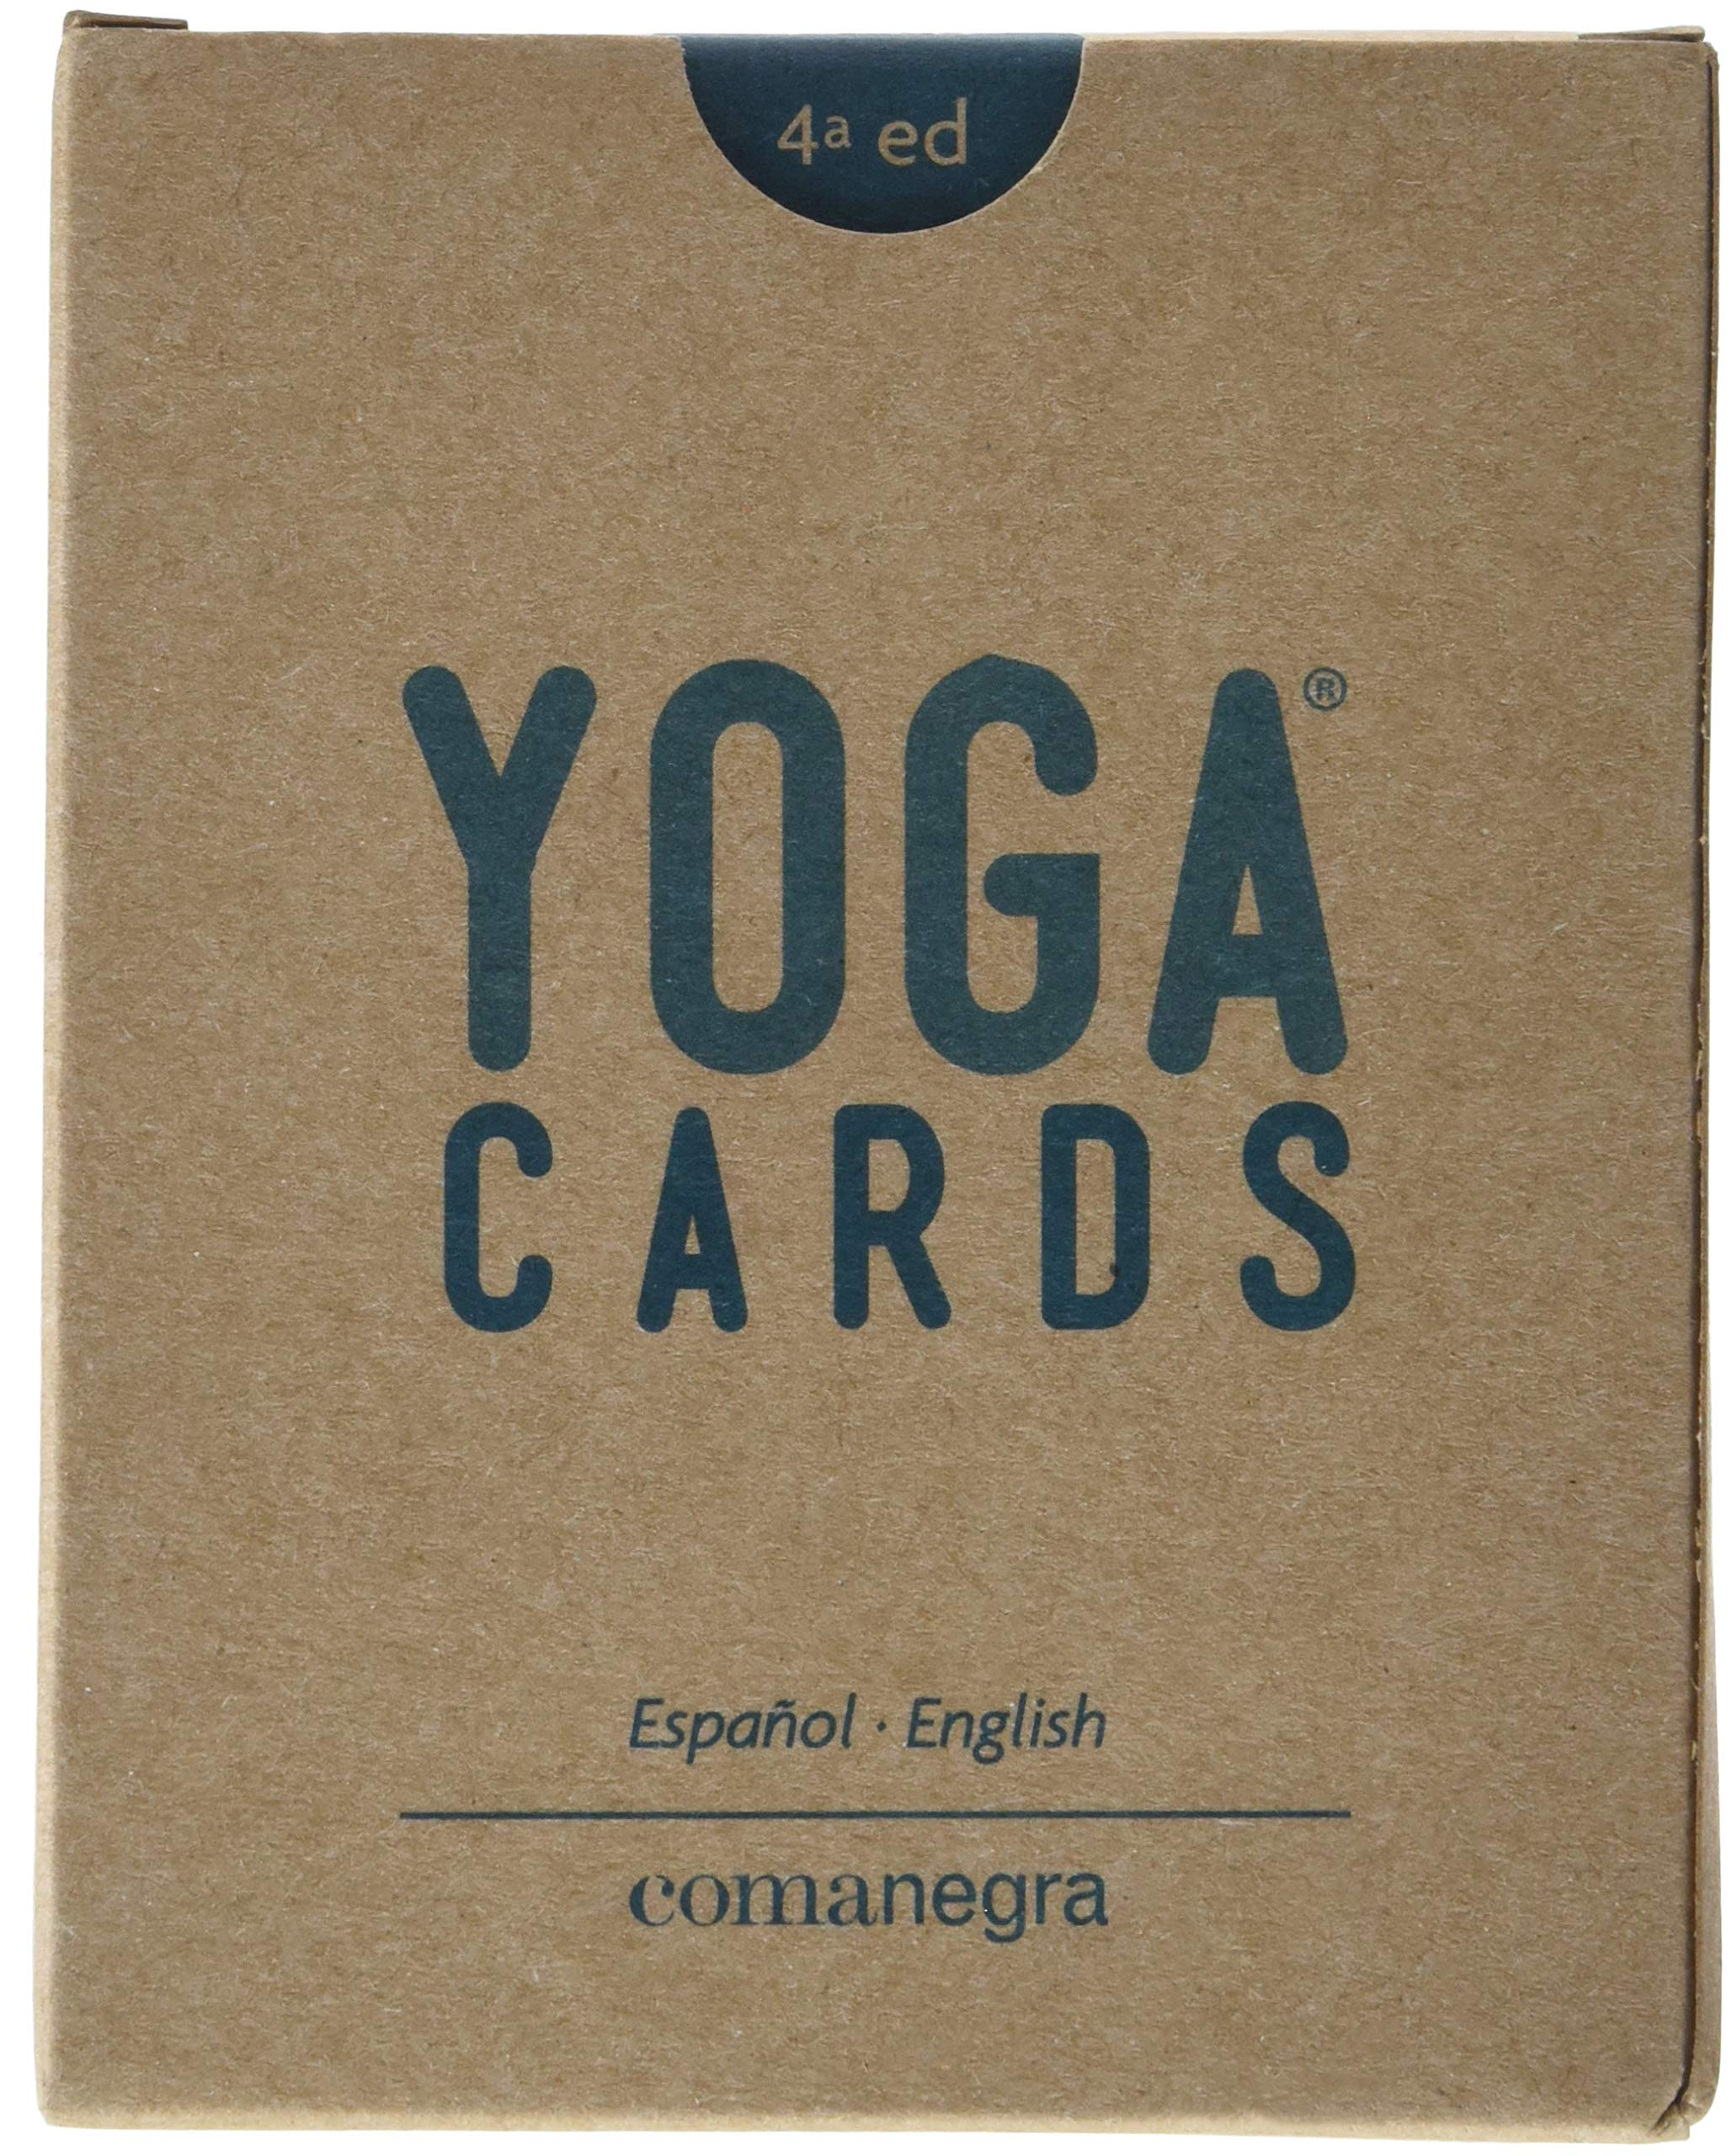 Yoga Cards (4ª edición): Pia Moure: 9788417188368: Amazon ...